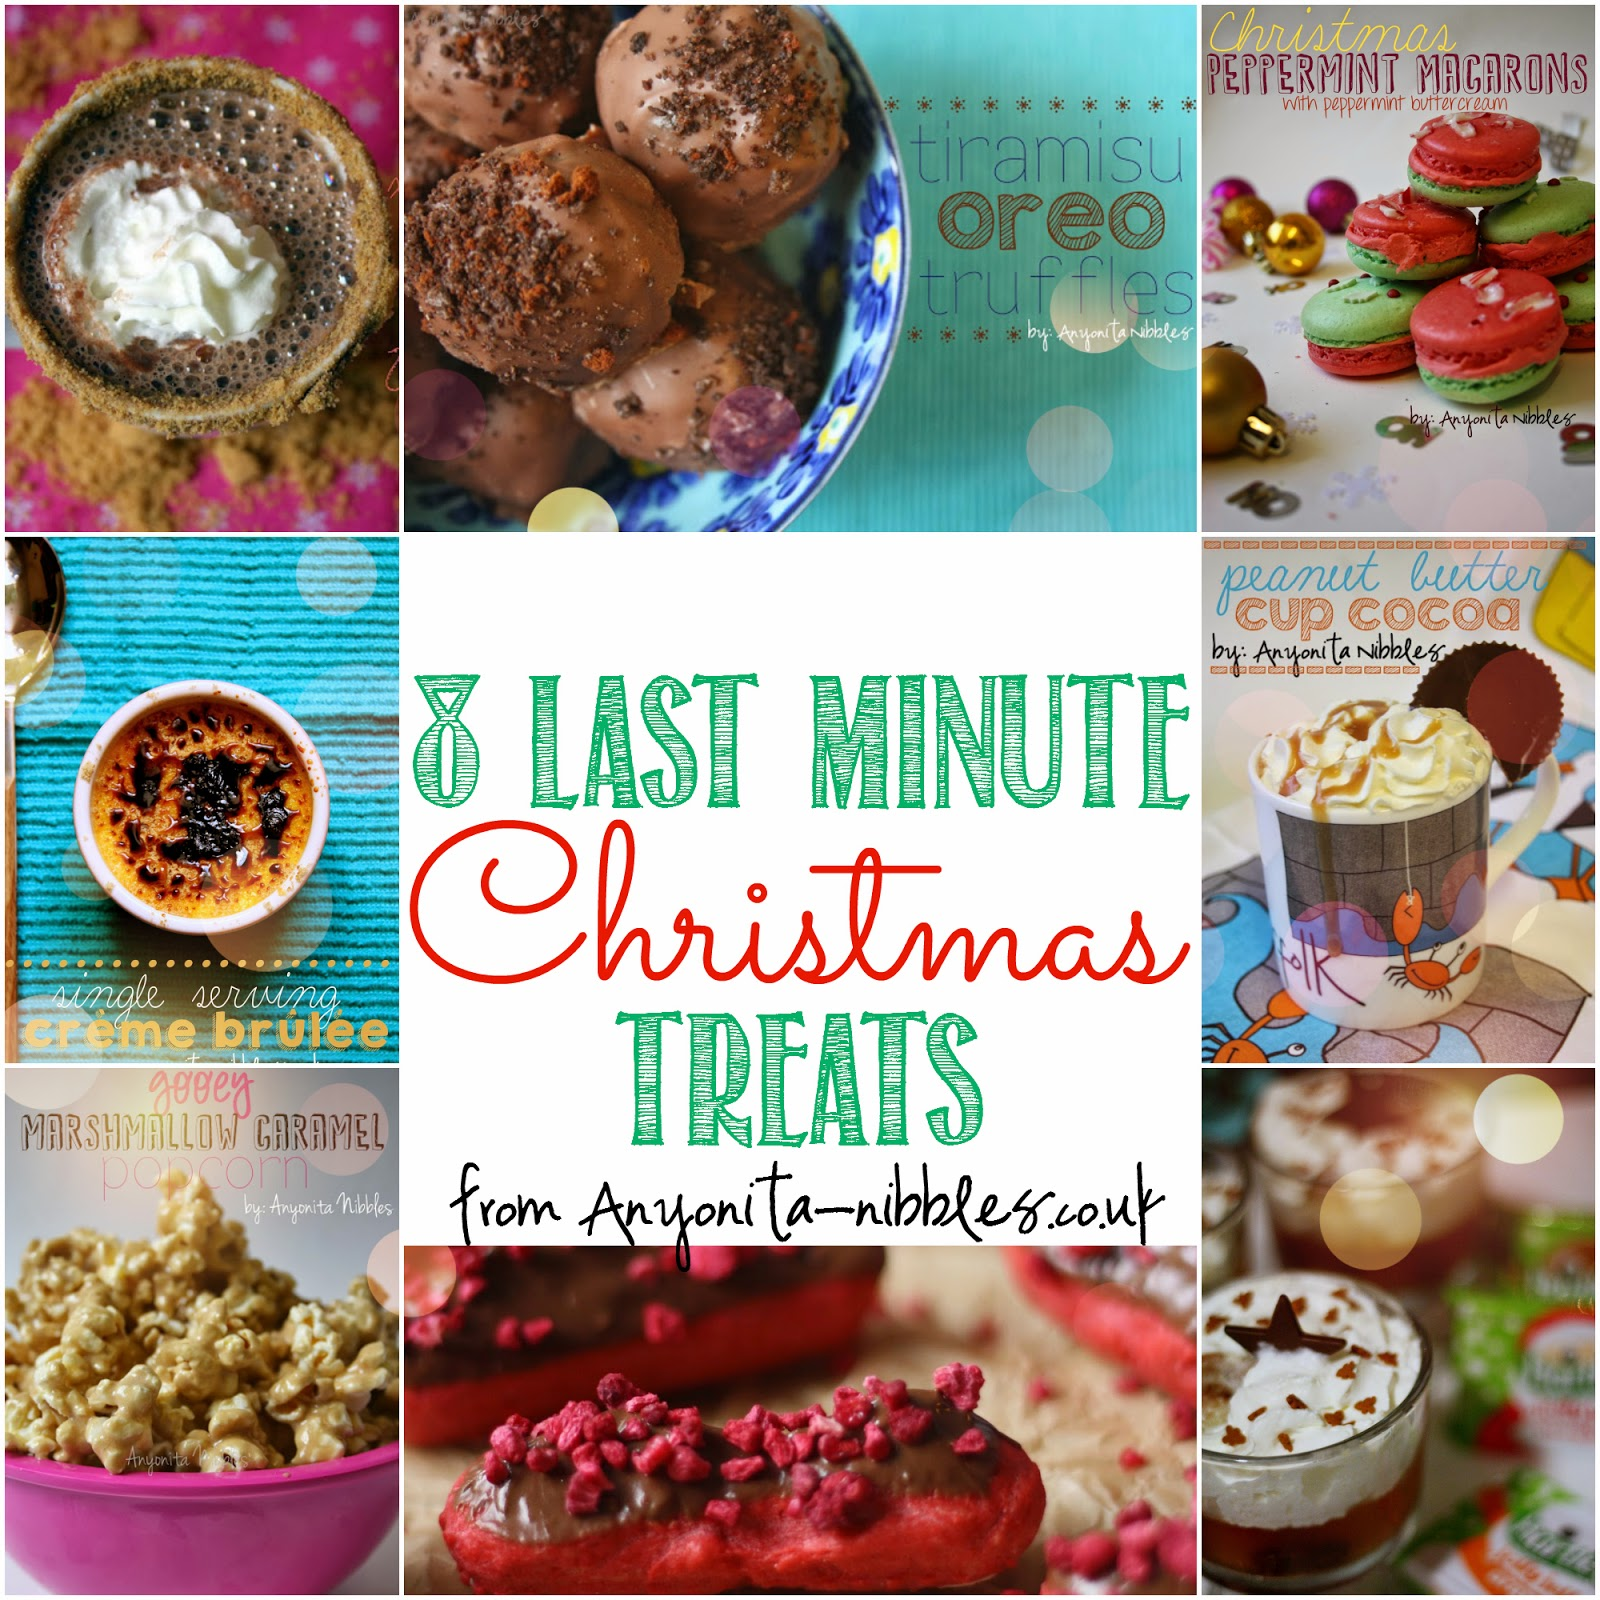 8 Last Minute Christmas Treats from Anyonita-nibbles.co.uk